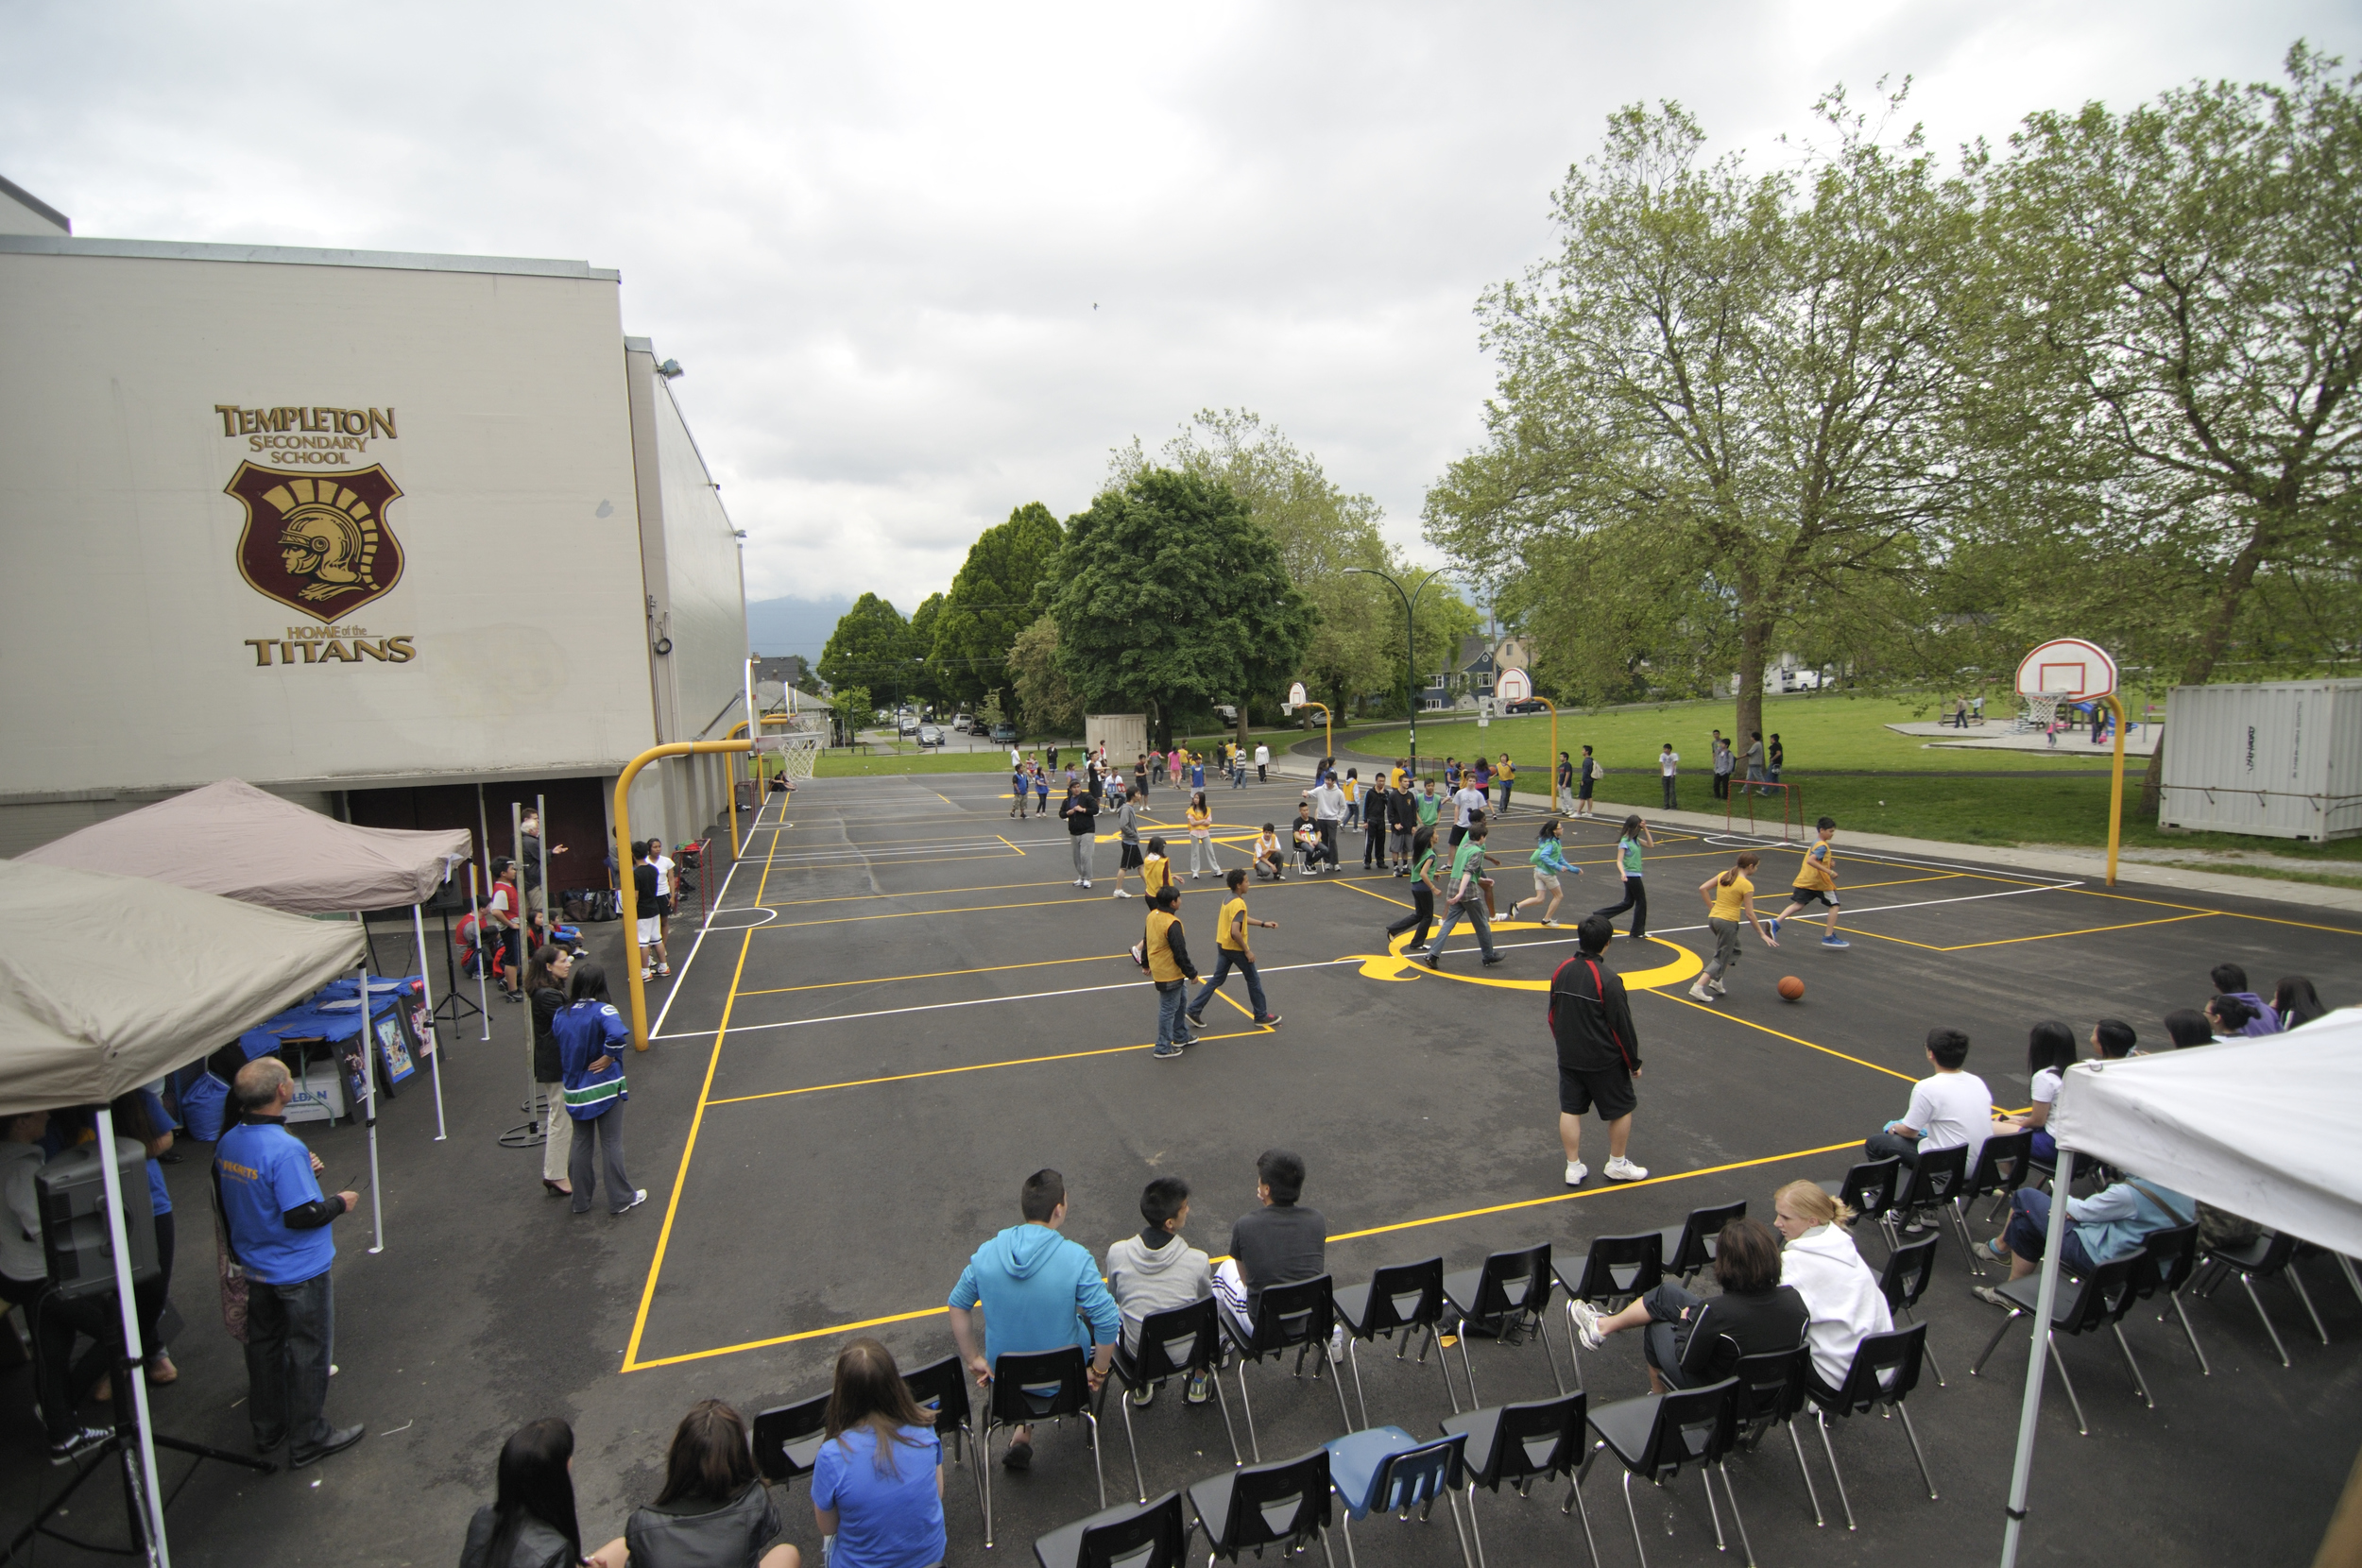 Quinn's Court at Templeton Secondary, Vancouver